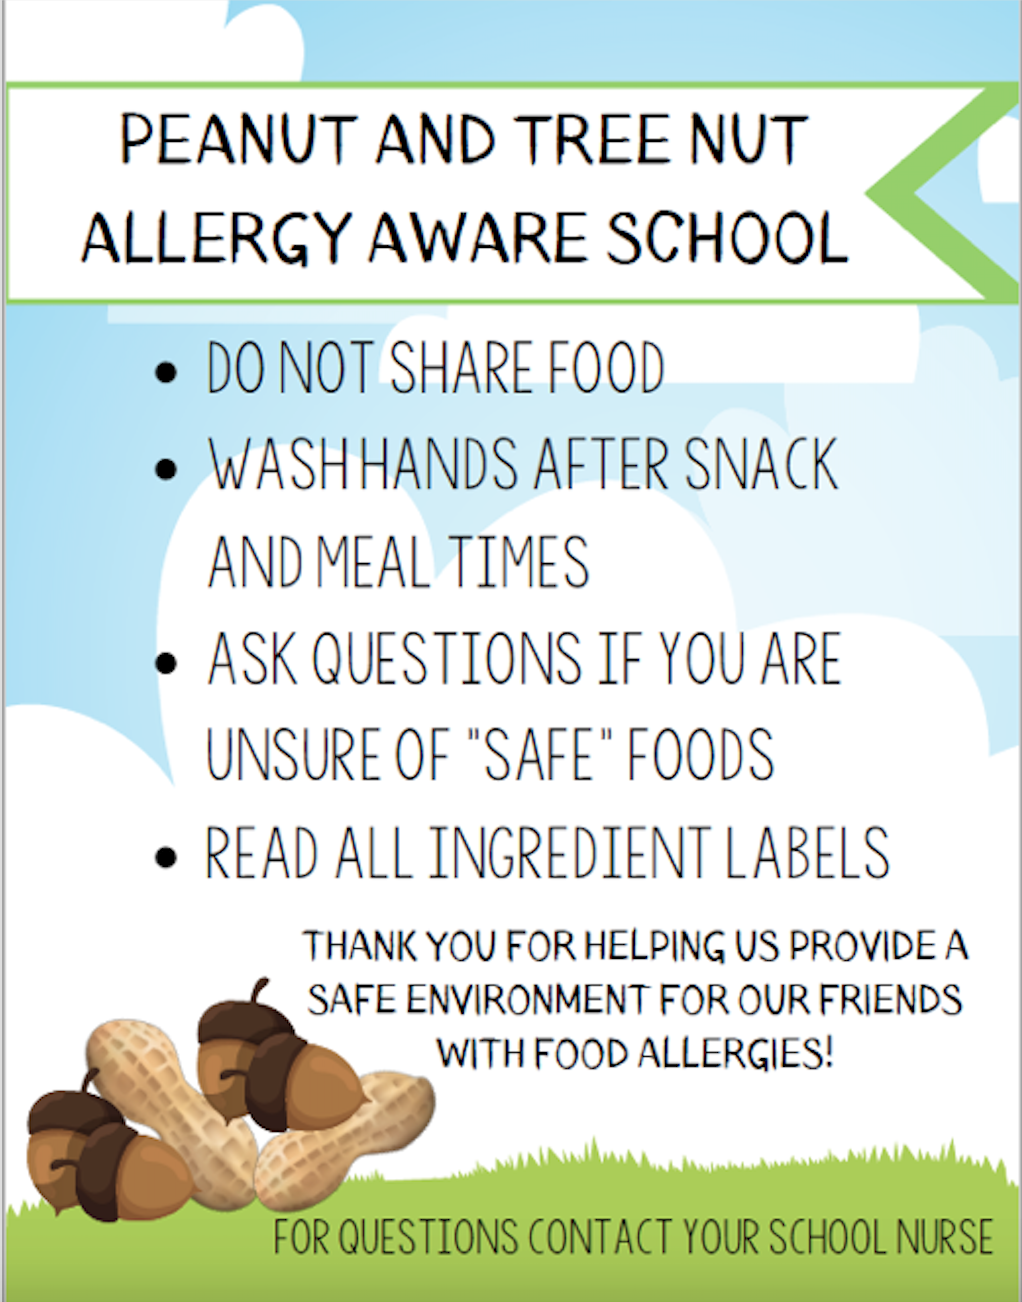 Peanut and Tree Nut Allergy Aware School